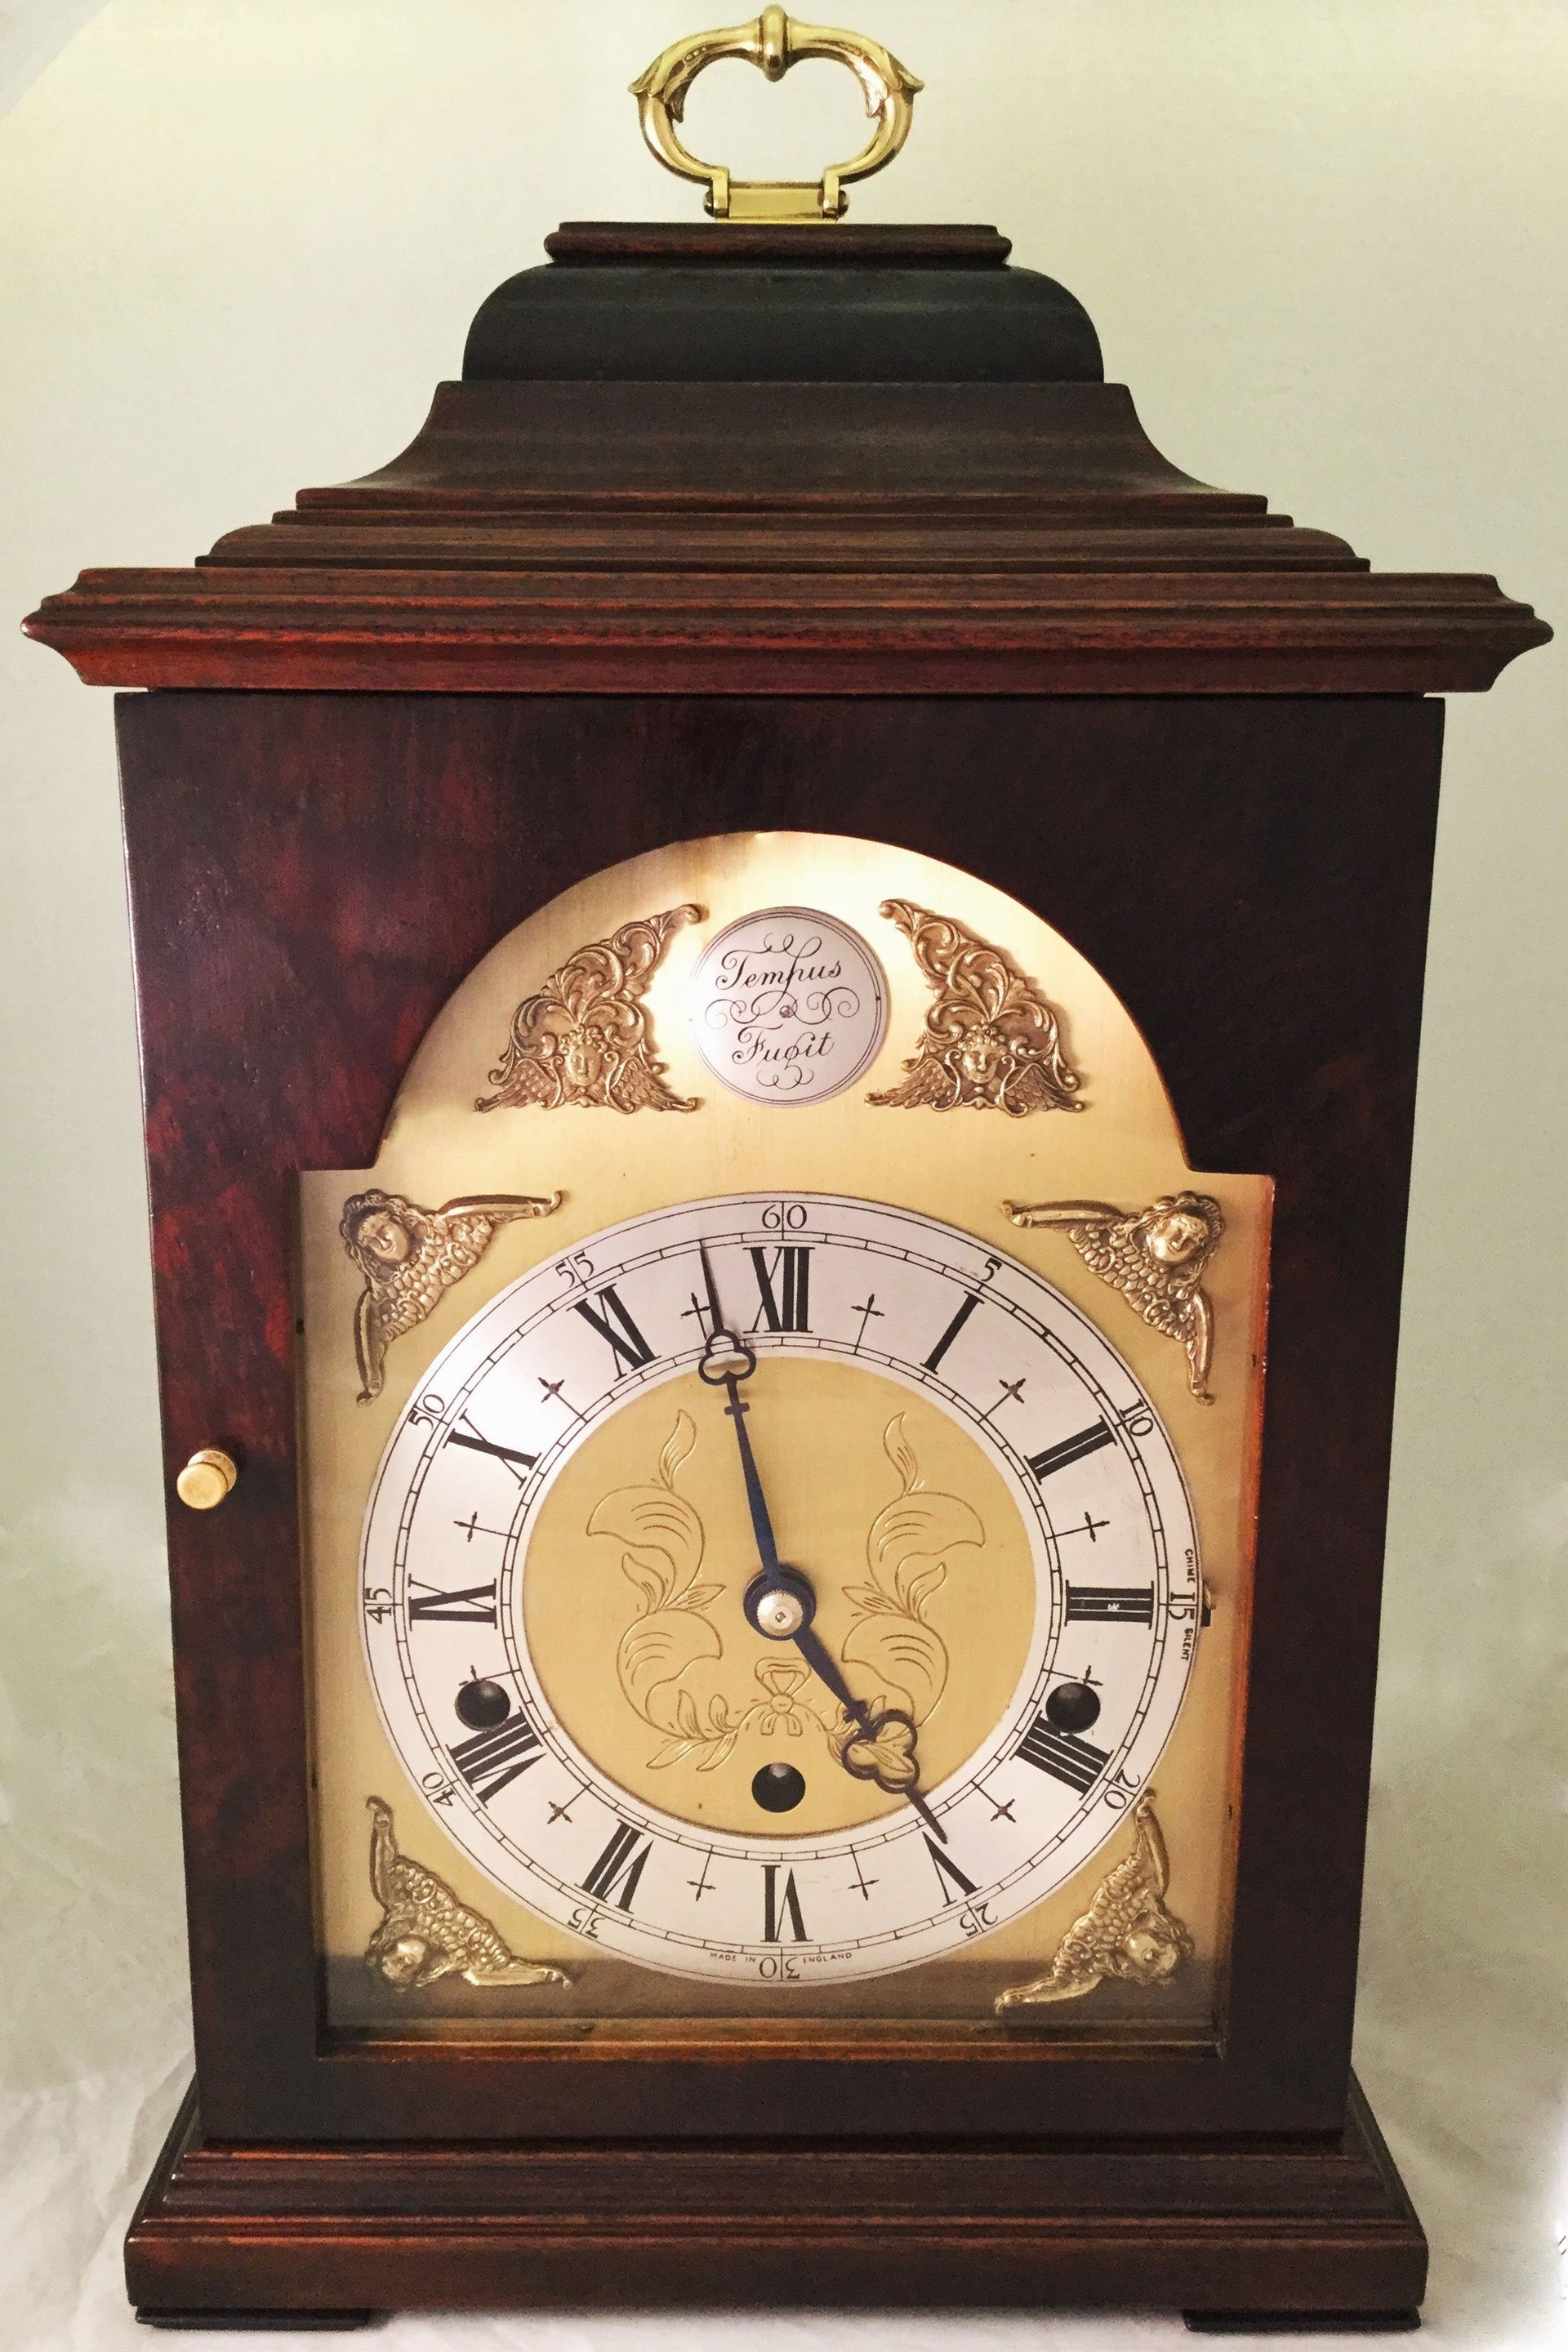 Elliott three train mantel clock